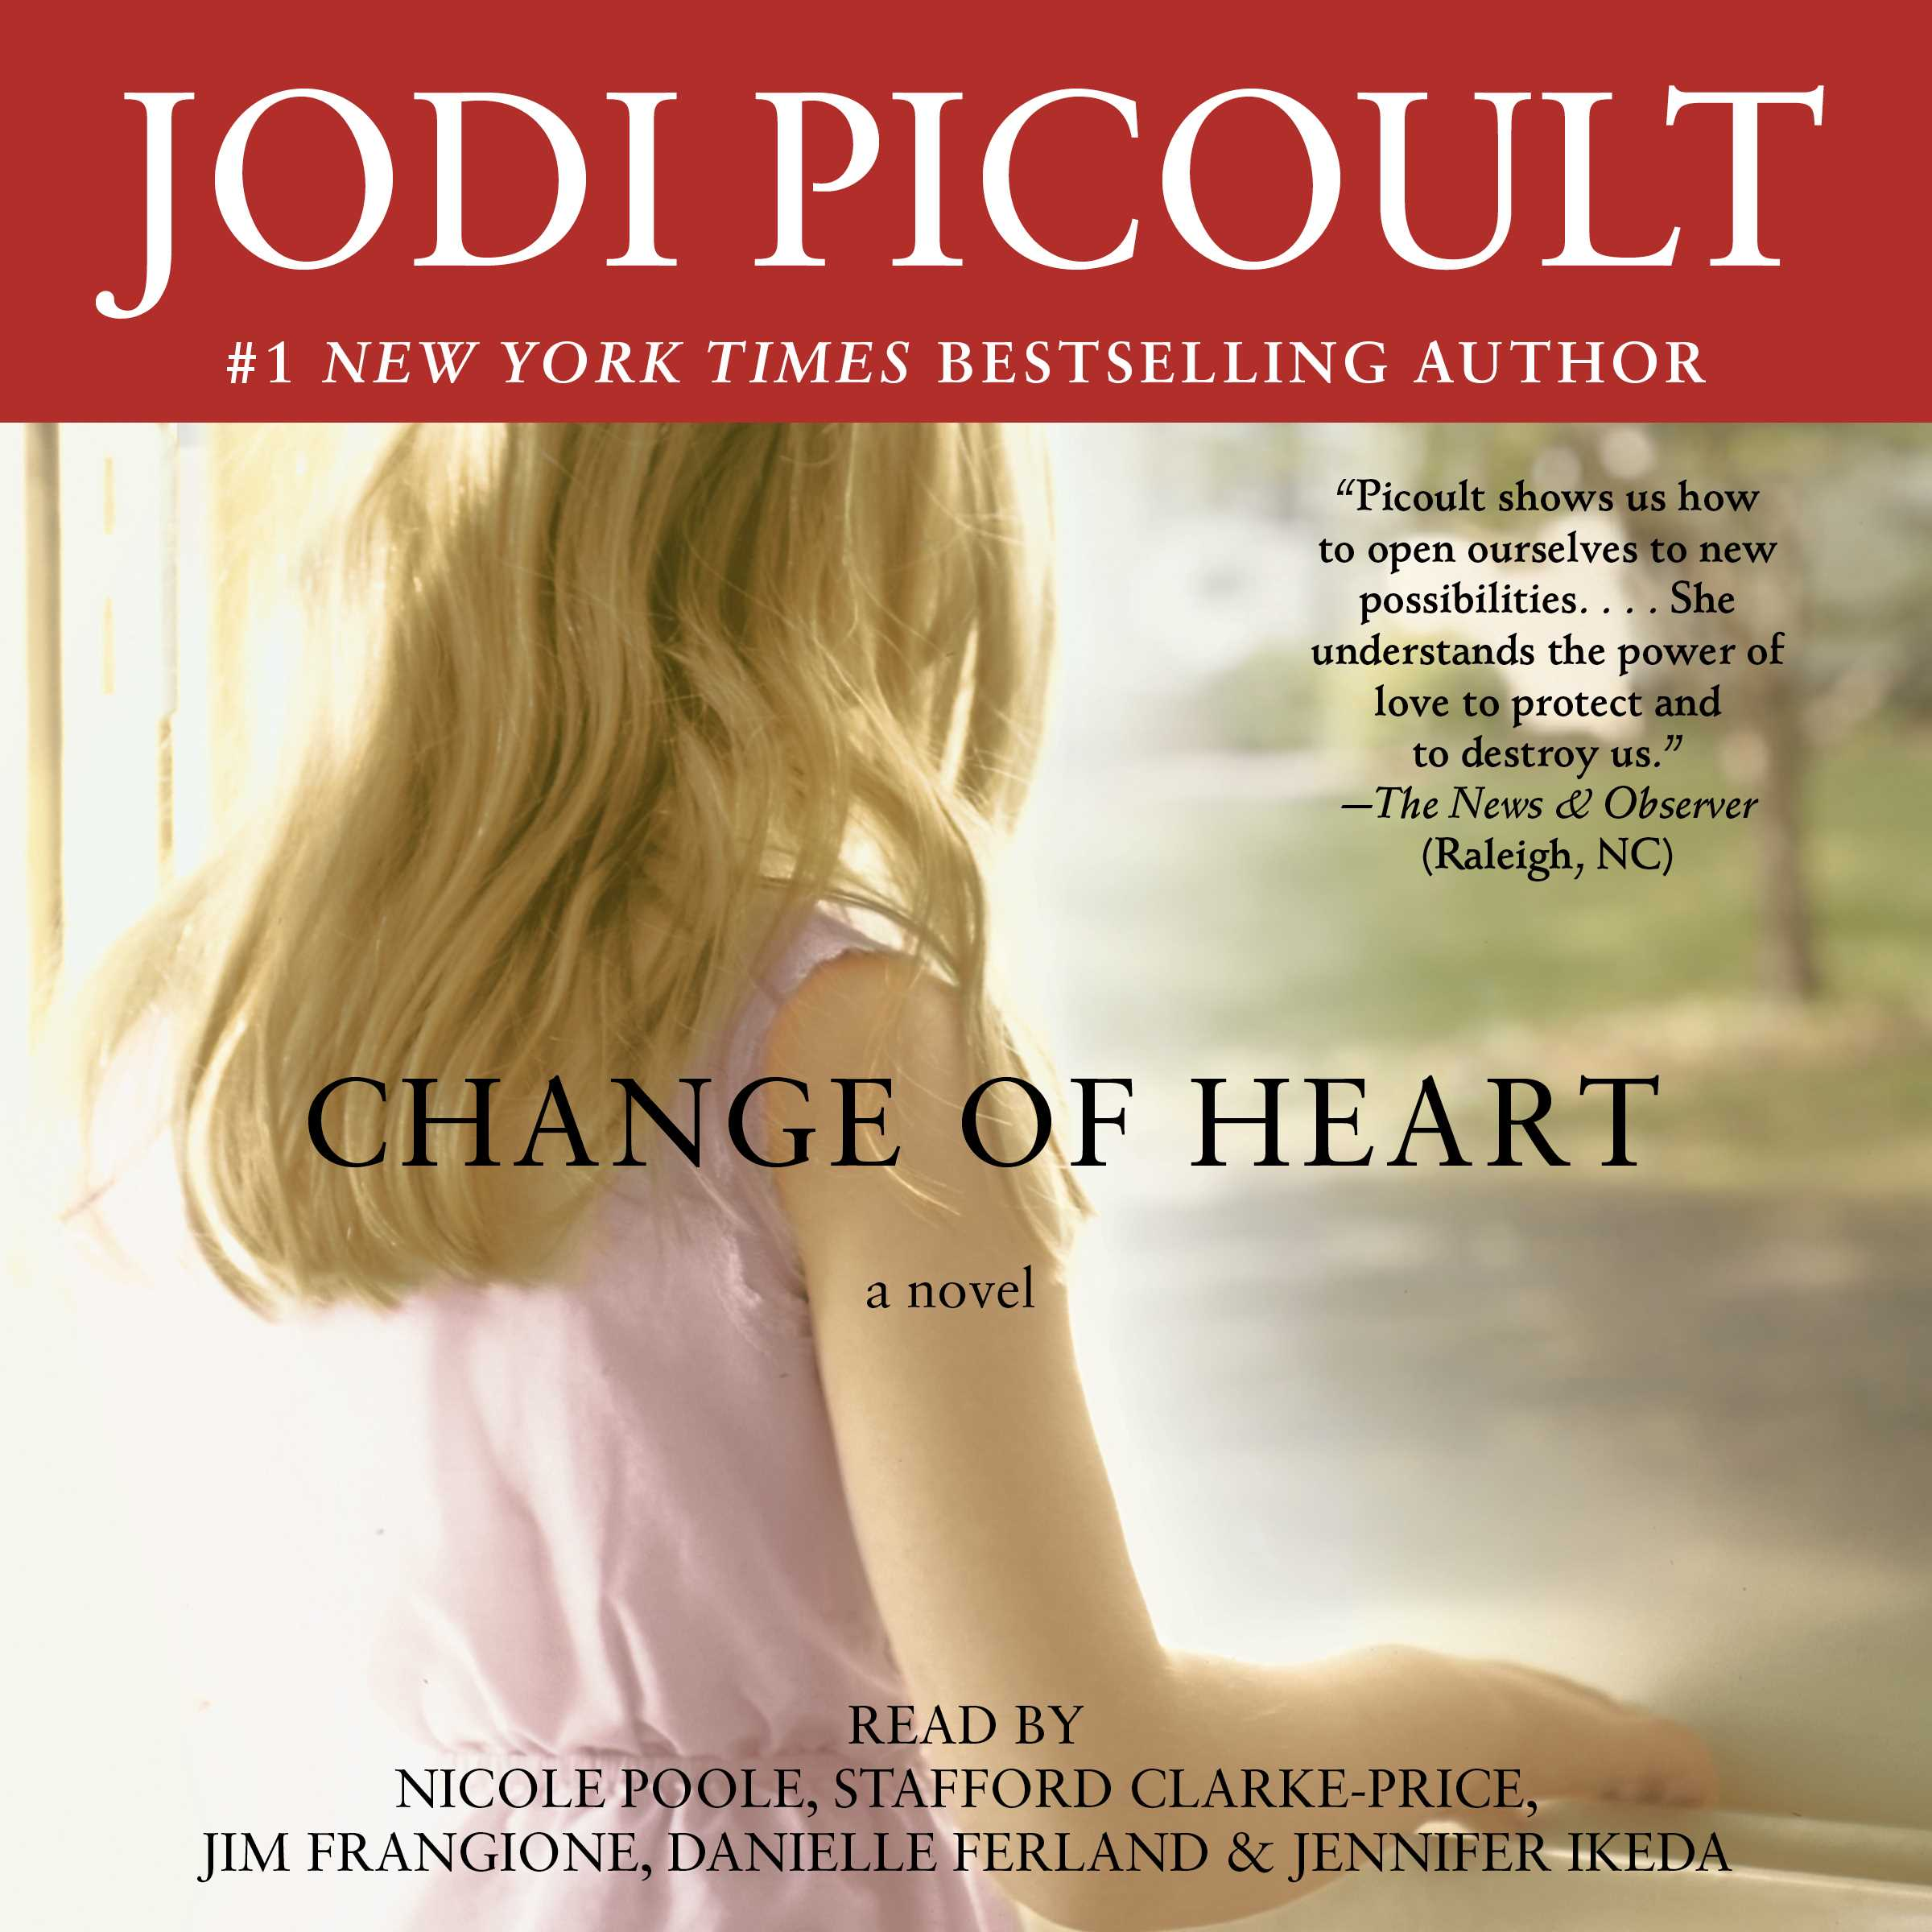 change of heart by jodi picoult Change of heart: a novel - ebook written by jodi picoult read this book using google play books app on your pc, android, ios devices download for offline reading.